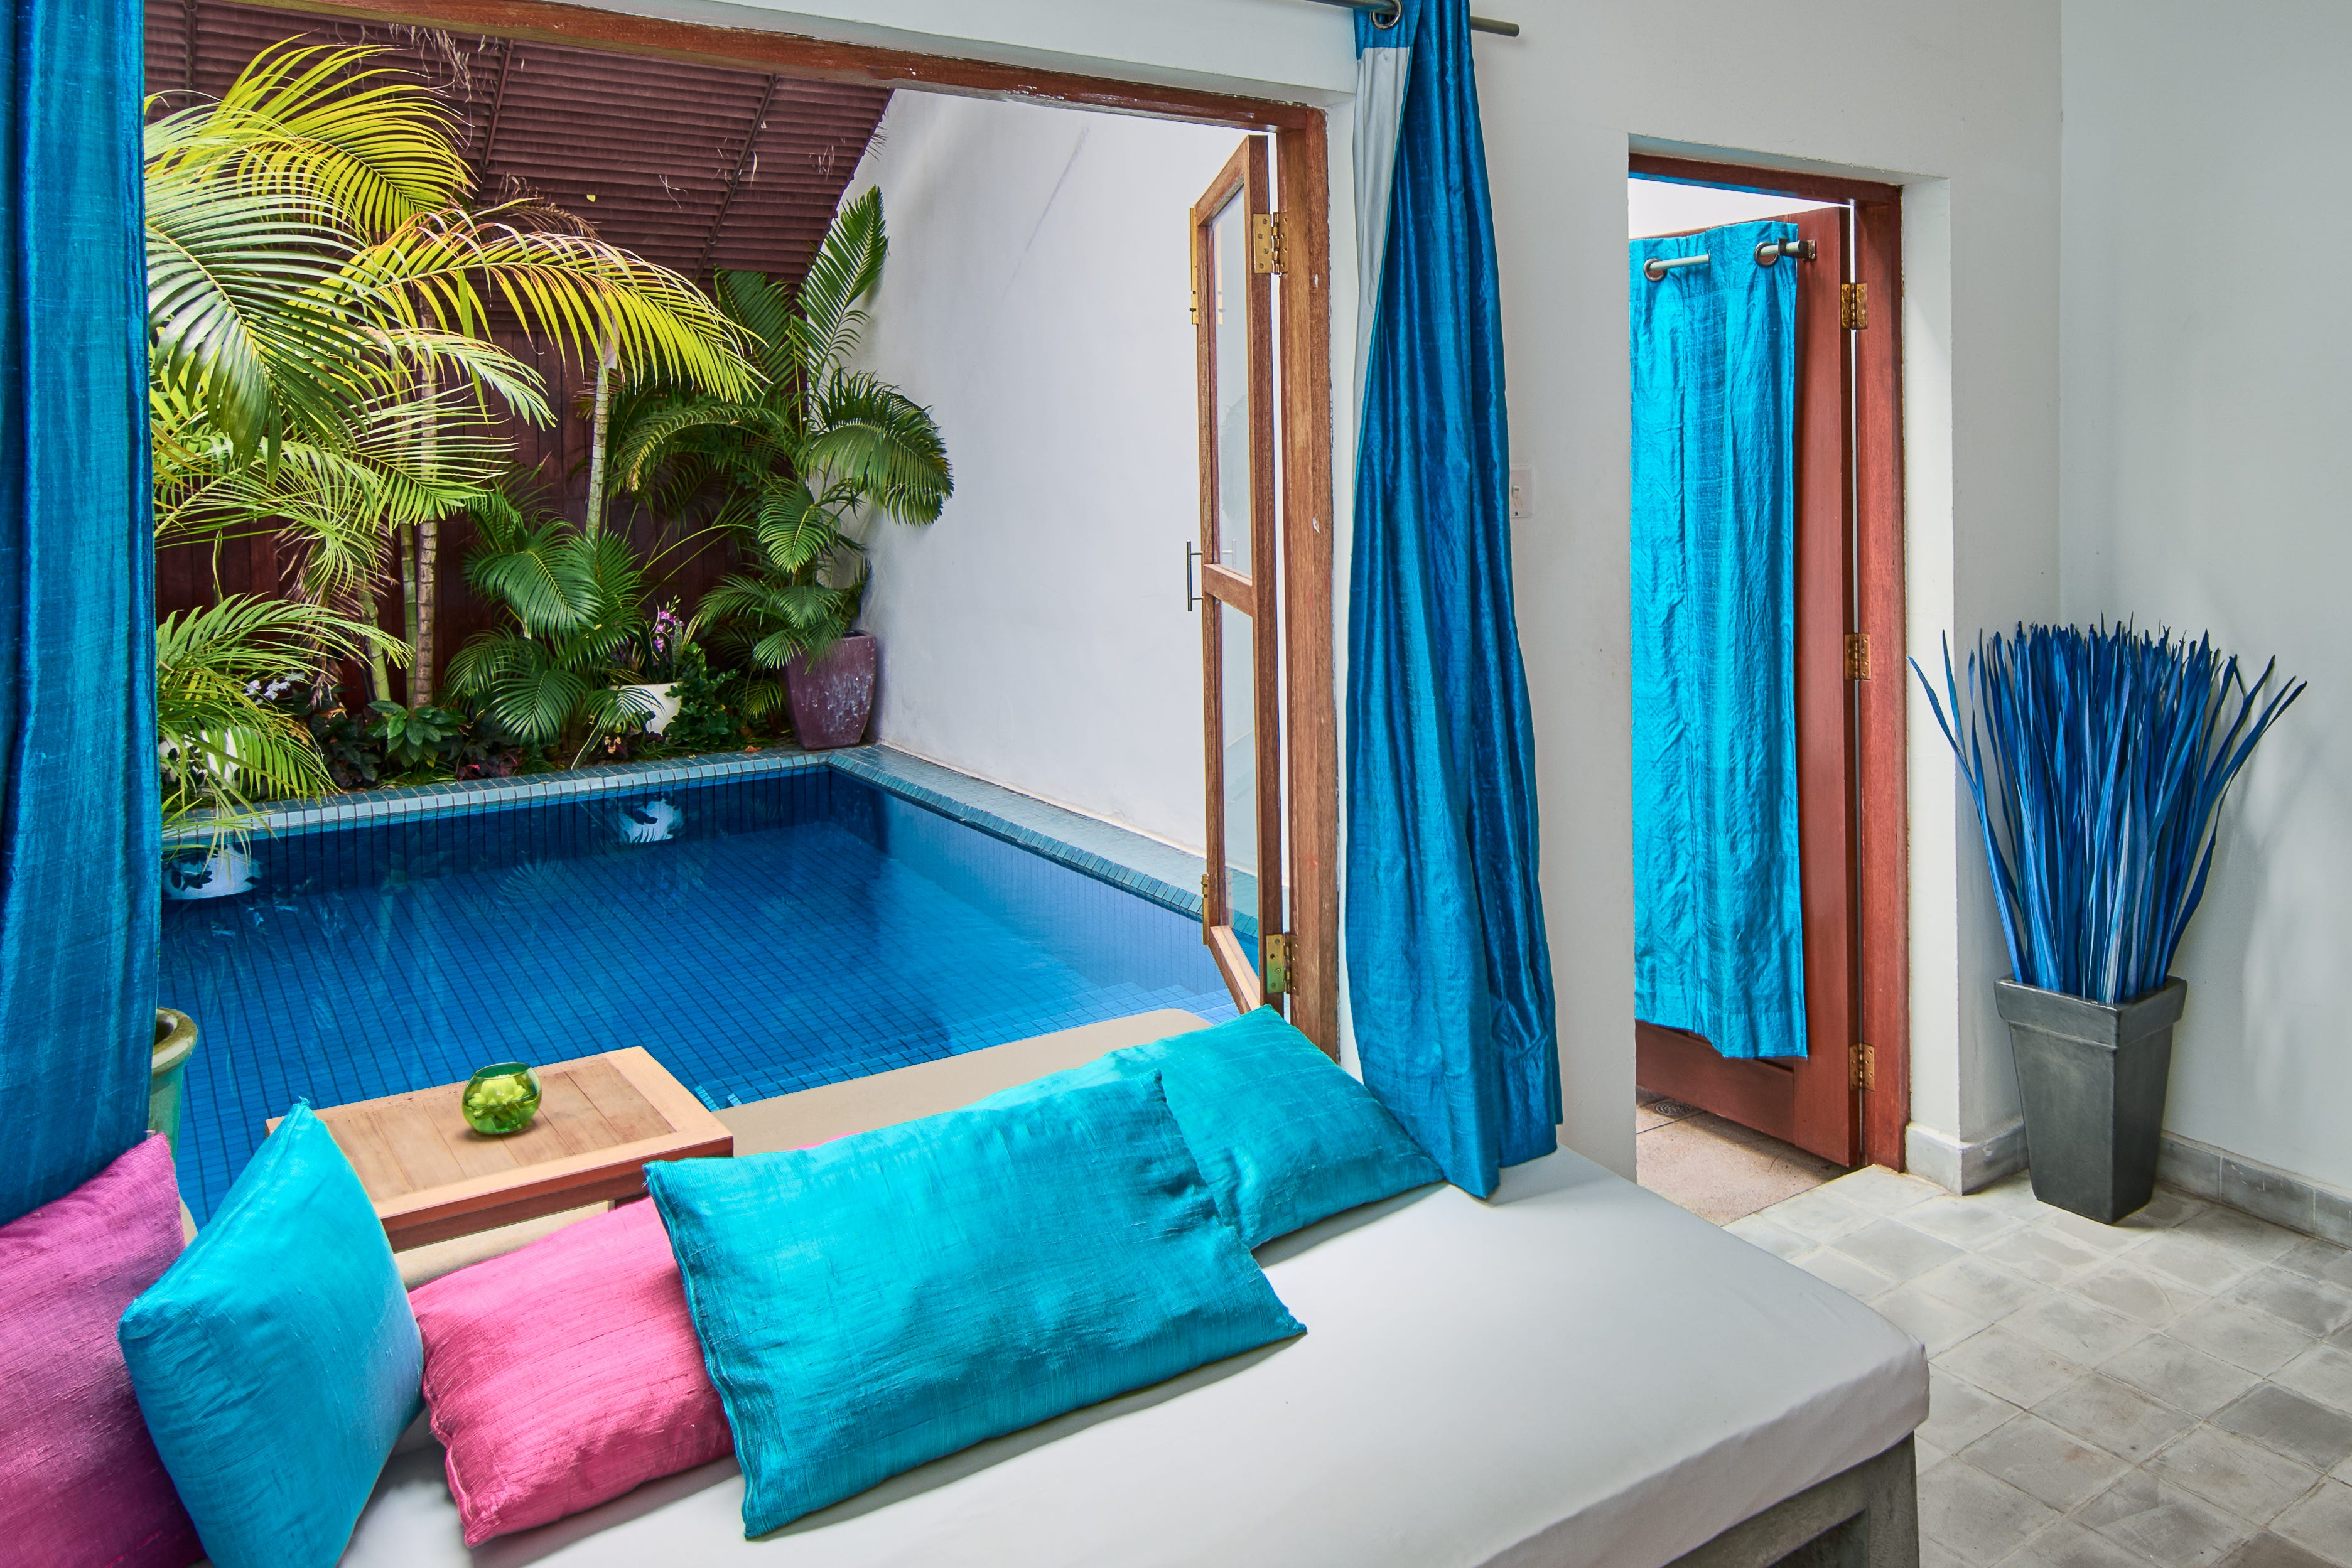 Plunge pool amenities hotels with private pools